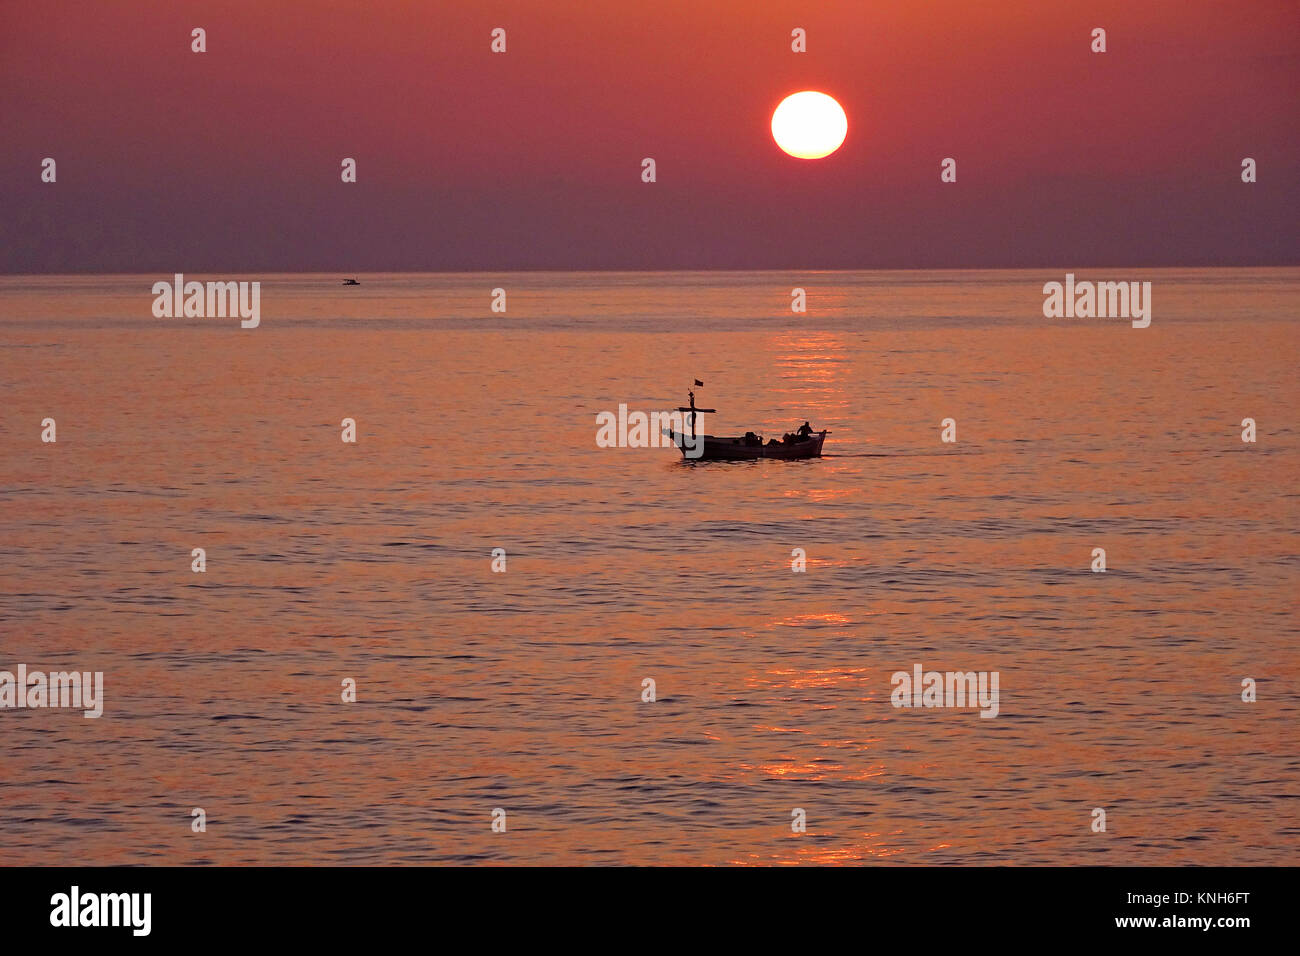 Small fishing boat on sea at sunset, Alanya, turkish riviera, Turkey Stock Photo